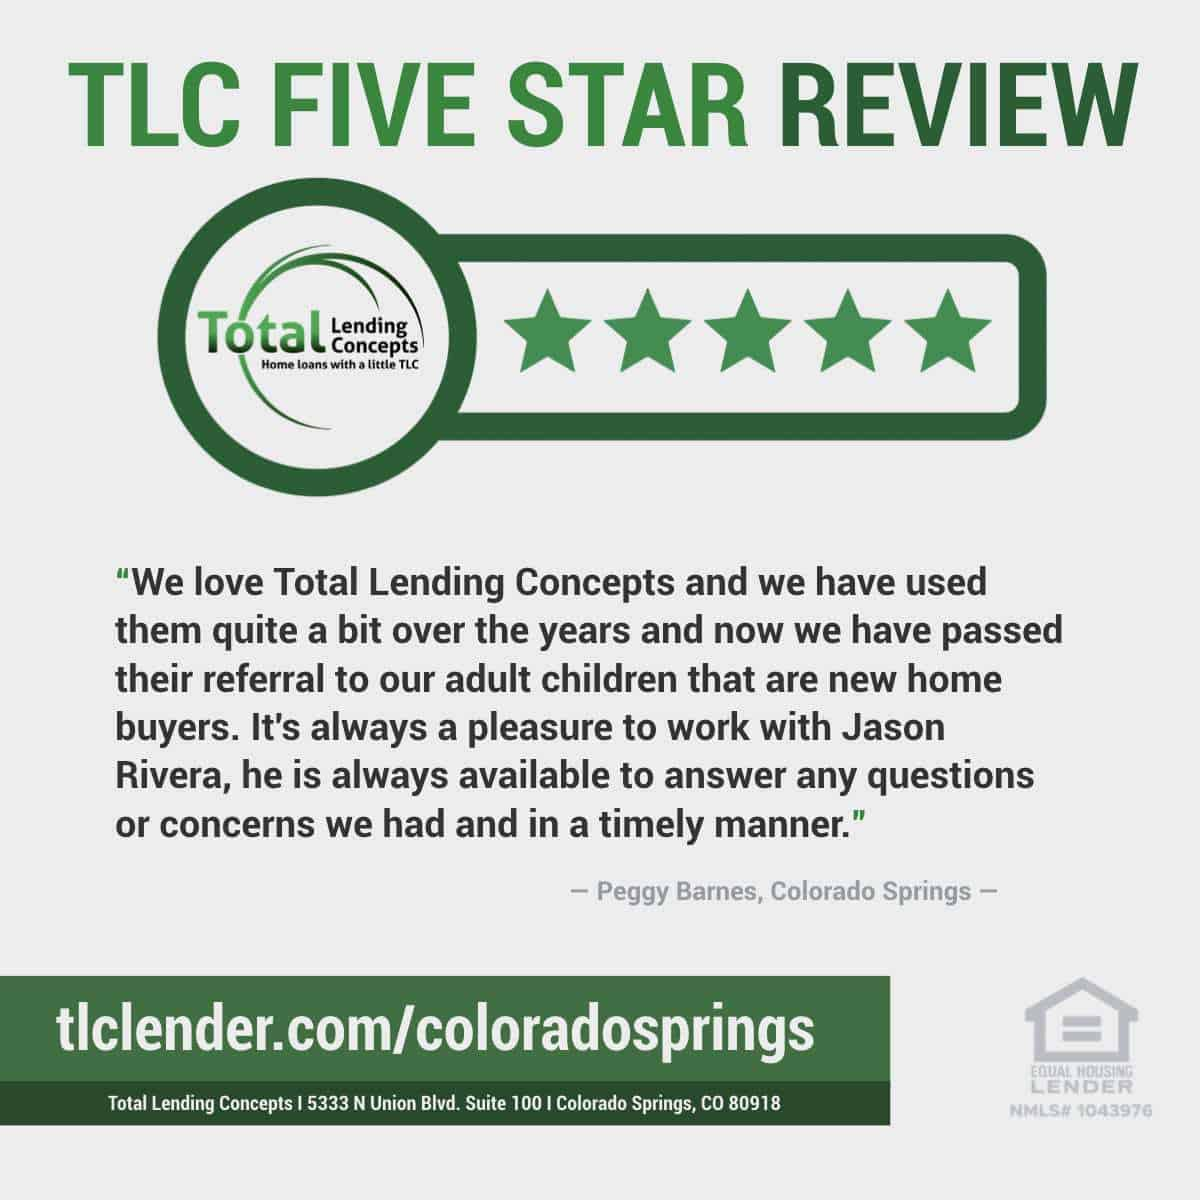 Total Lending Concepts Five Star Review Peggy Barnes in Colorado Springs for Jason Rivera Home Loan